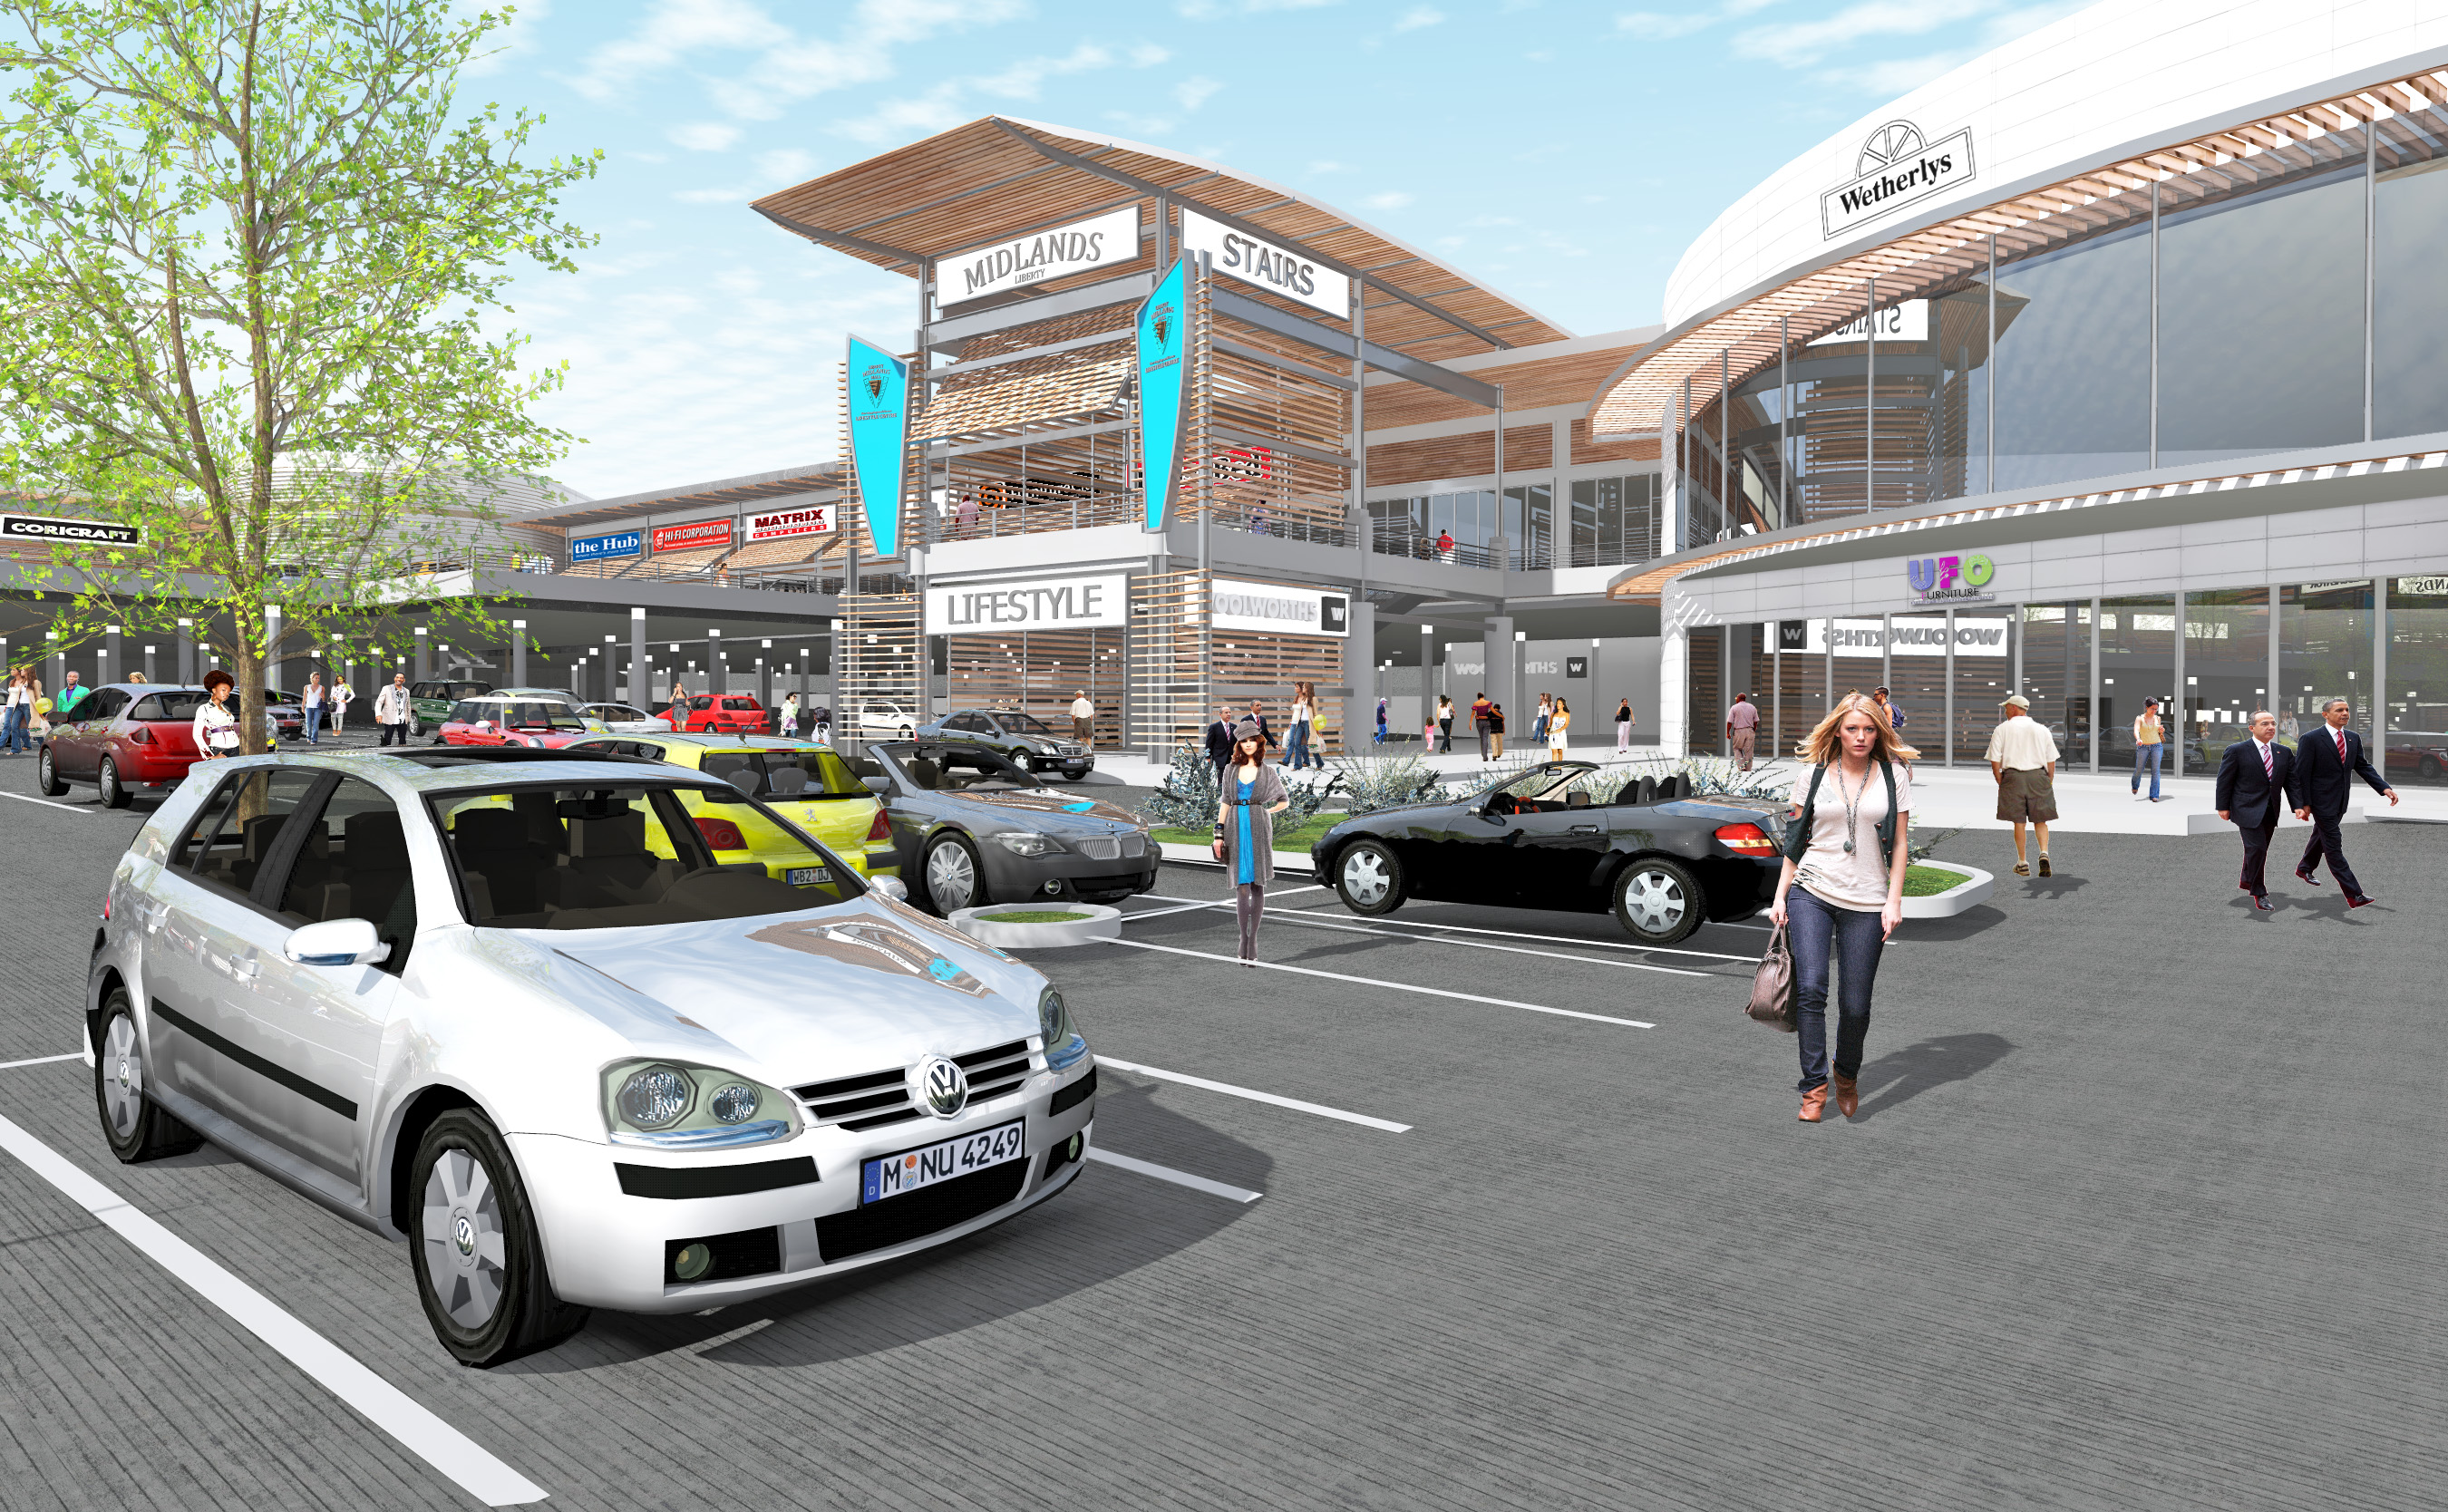 MIDLANDS MALL LIFESTYLE CENTRE